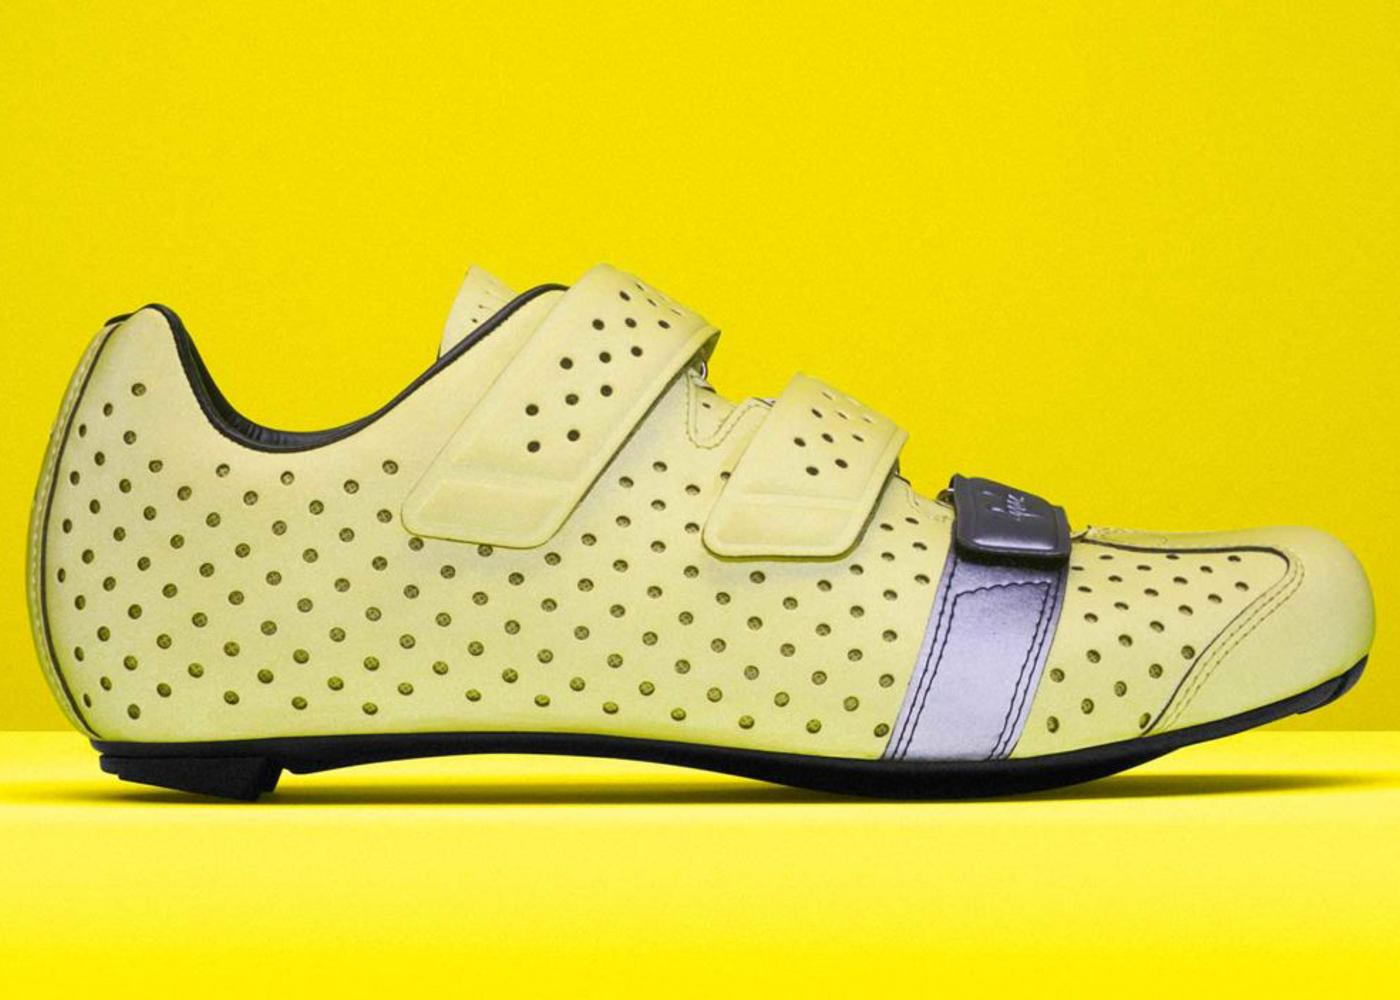 Rapha's Reflective Climber's Shoes